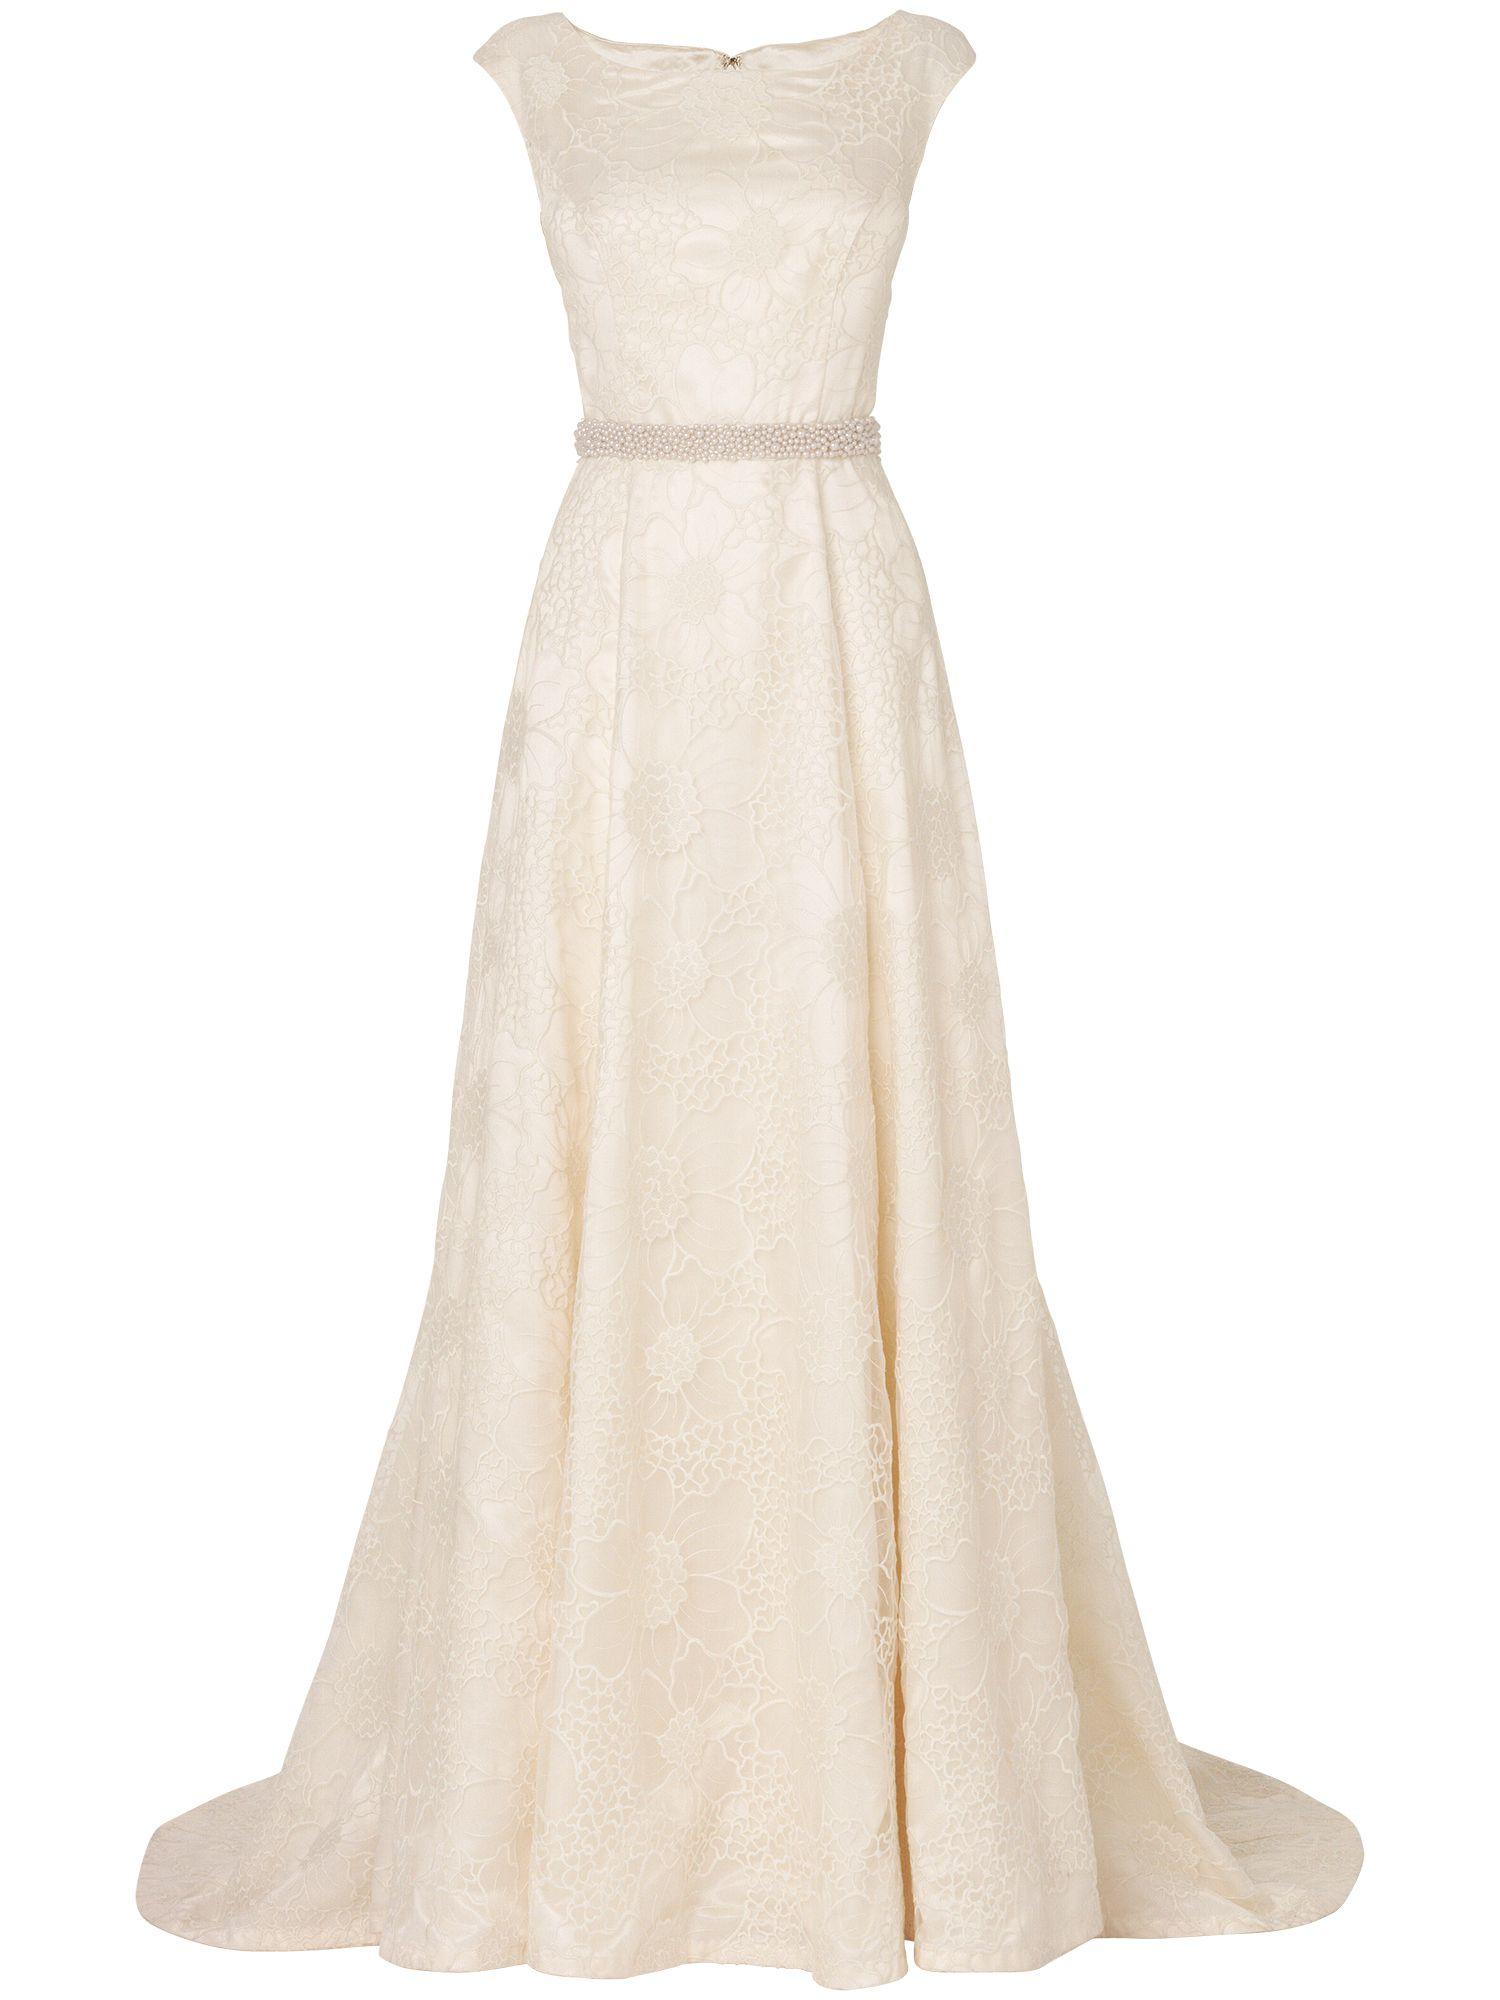 Women's Phase Eight Flora embroidered wedding dress, Cream